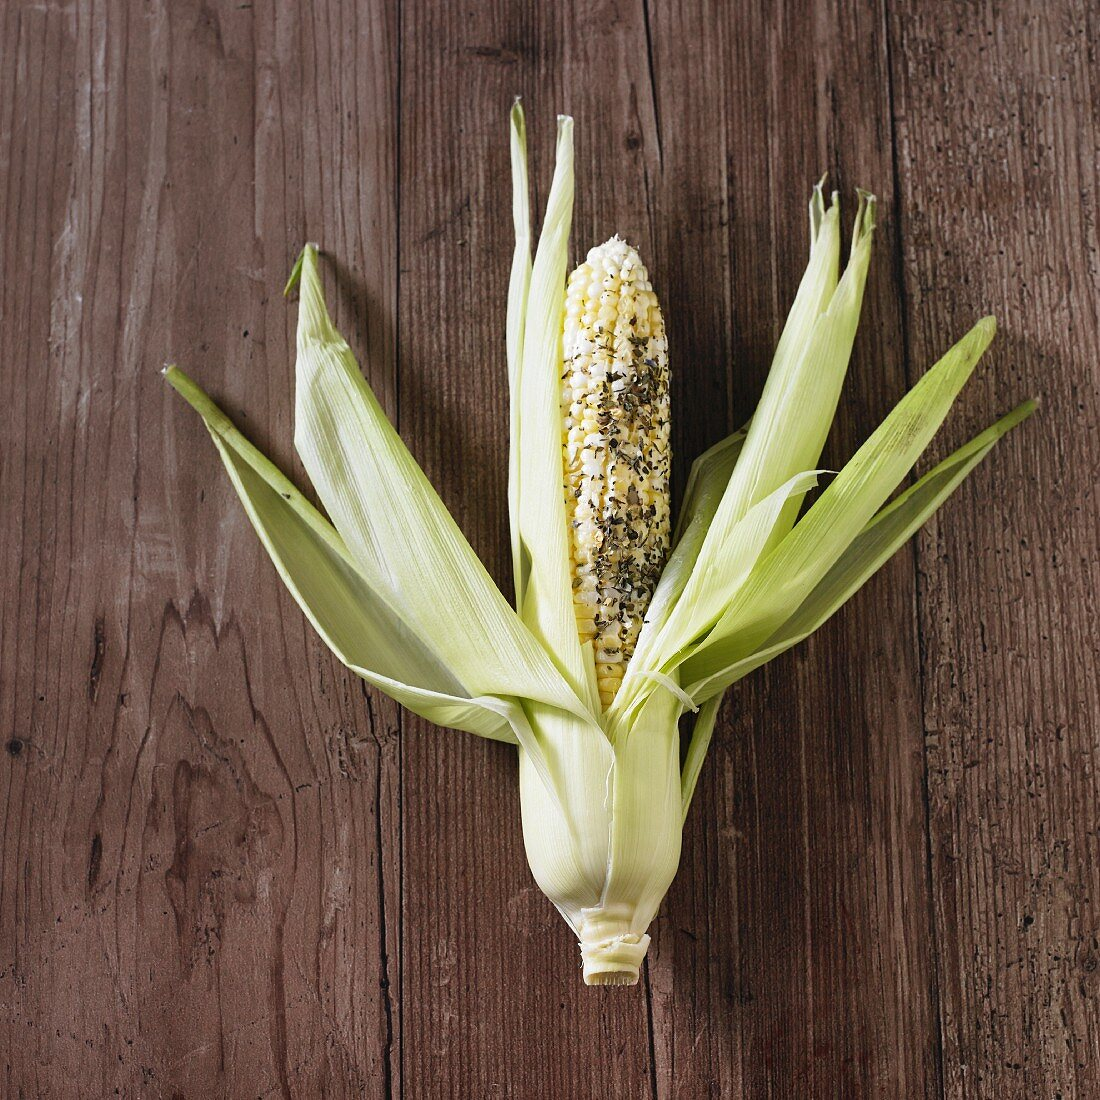 A fresh corn cob with butter and herbs, ready to cook